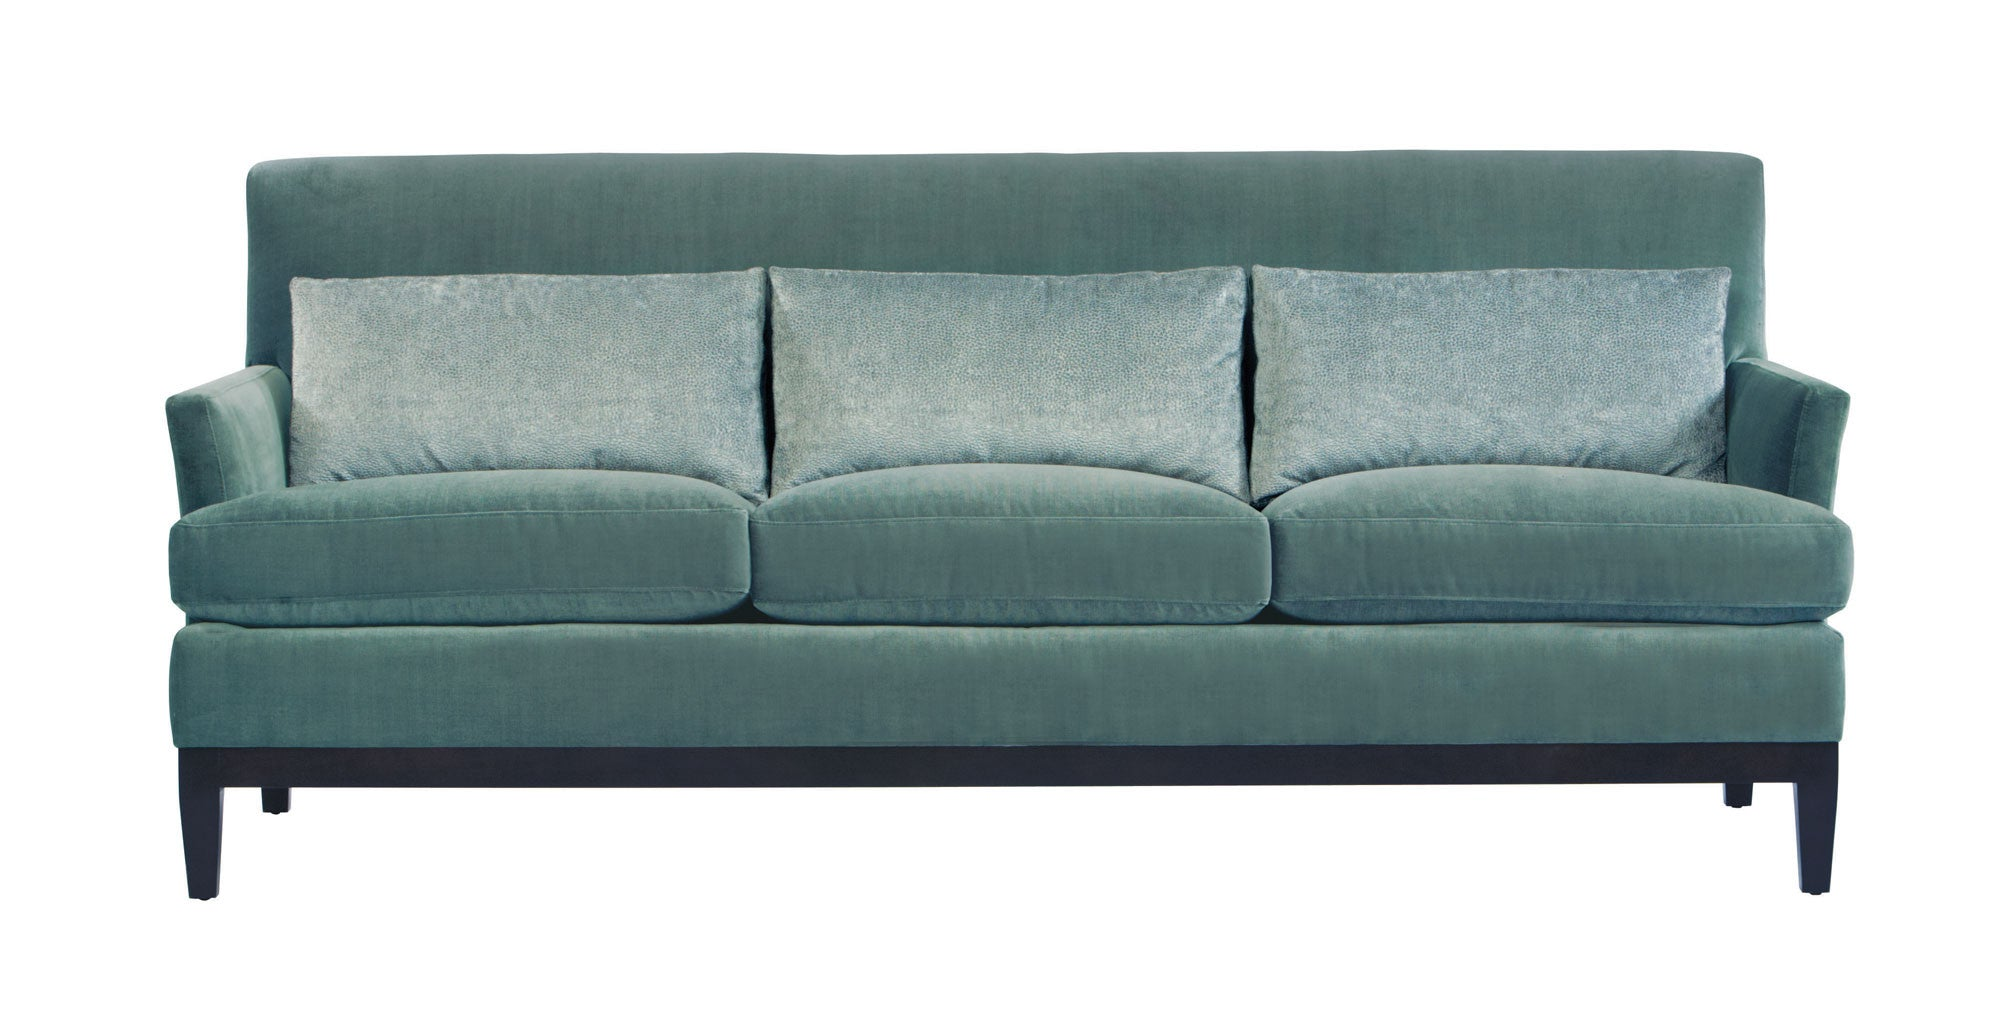 Bernhardt furniture sofa refil sofa for Bernhardt furniture